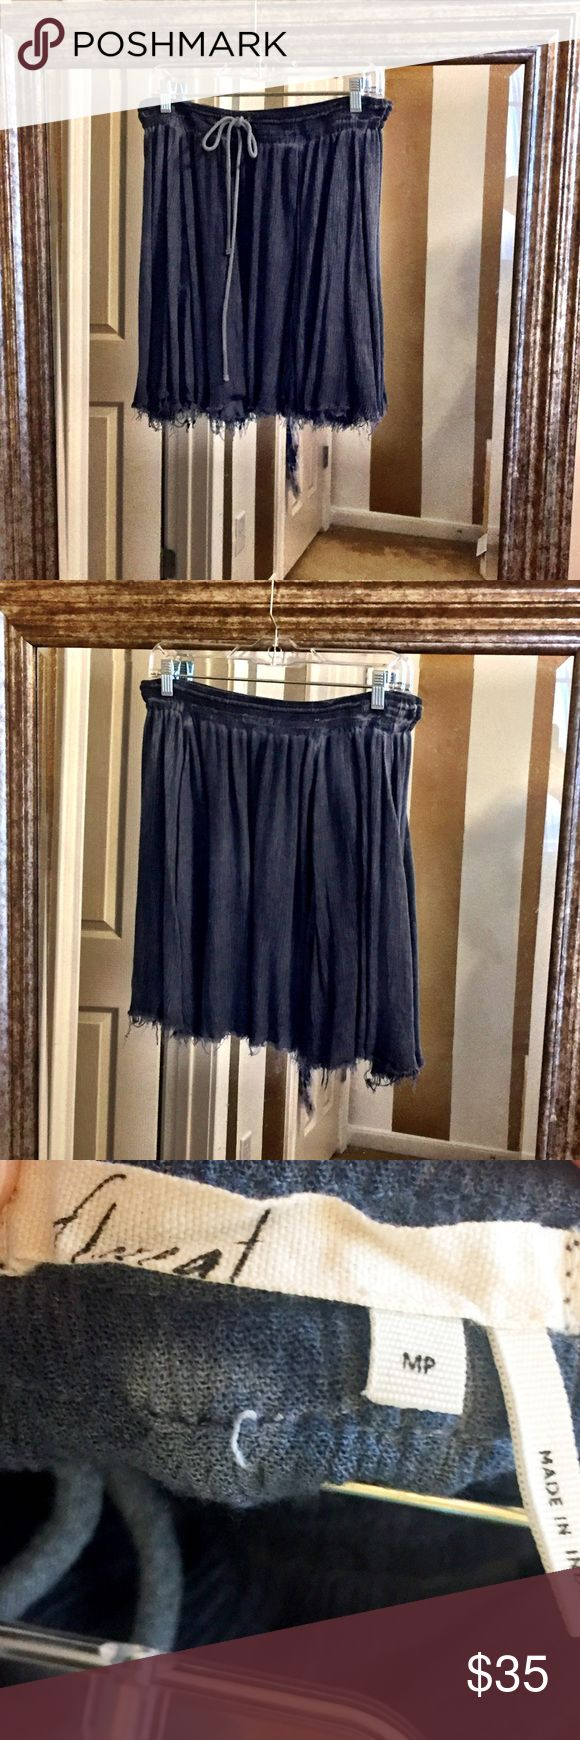 Anthropologie Perfect Denim Gauze Skater Skirt Such a cute spring skirt just too big for me bought and never got to wear can be dressed up or down and is the perfect material for warm weather NWOT Anthropologie Skirts